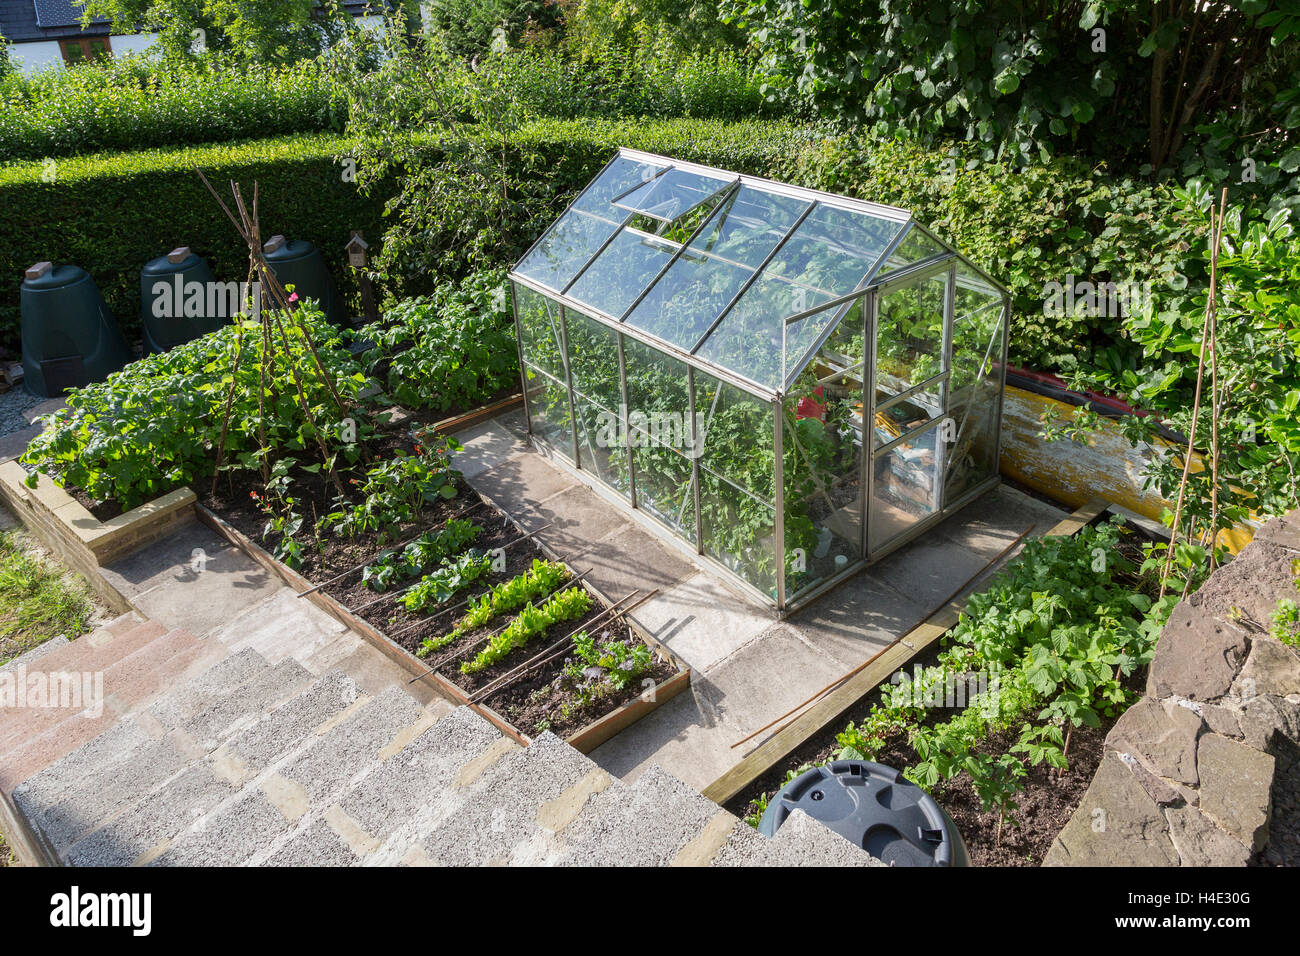 Garden with greenhouse and vegetable patch, Wales, UK - Stock Image